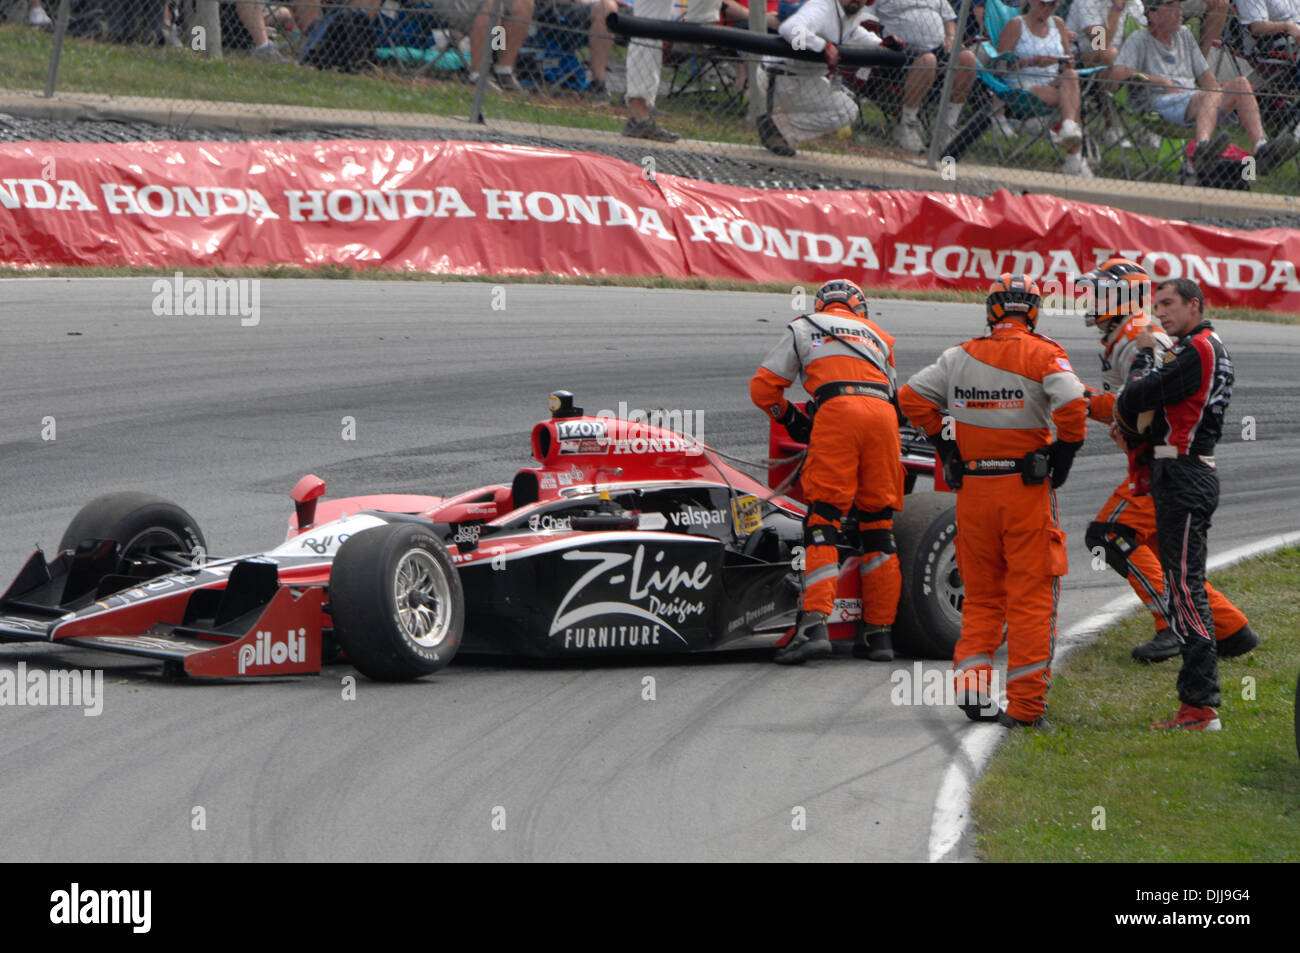 Aug. 08, 2010 - Lexington, Ohio, United States of America - 8 August, 2010; Dreyer & Reinbold Racing's JUSTIN WILSON speaks with a member of the Holmatro safety team after Wilson's crash during the Izod IndyCar Series Honda Indy 200 at the Mid-Ohio Sports Car Course in Lexington, Ohio..Mandatory Credit: Will Schneekloth / Southcreek Global (Credit Image: © Southcreek Global/ZUMApre - Stock Image